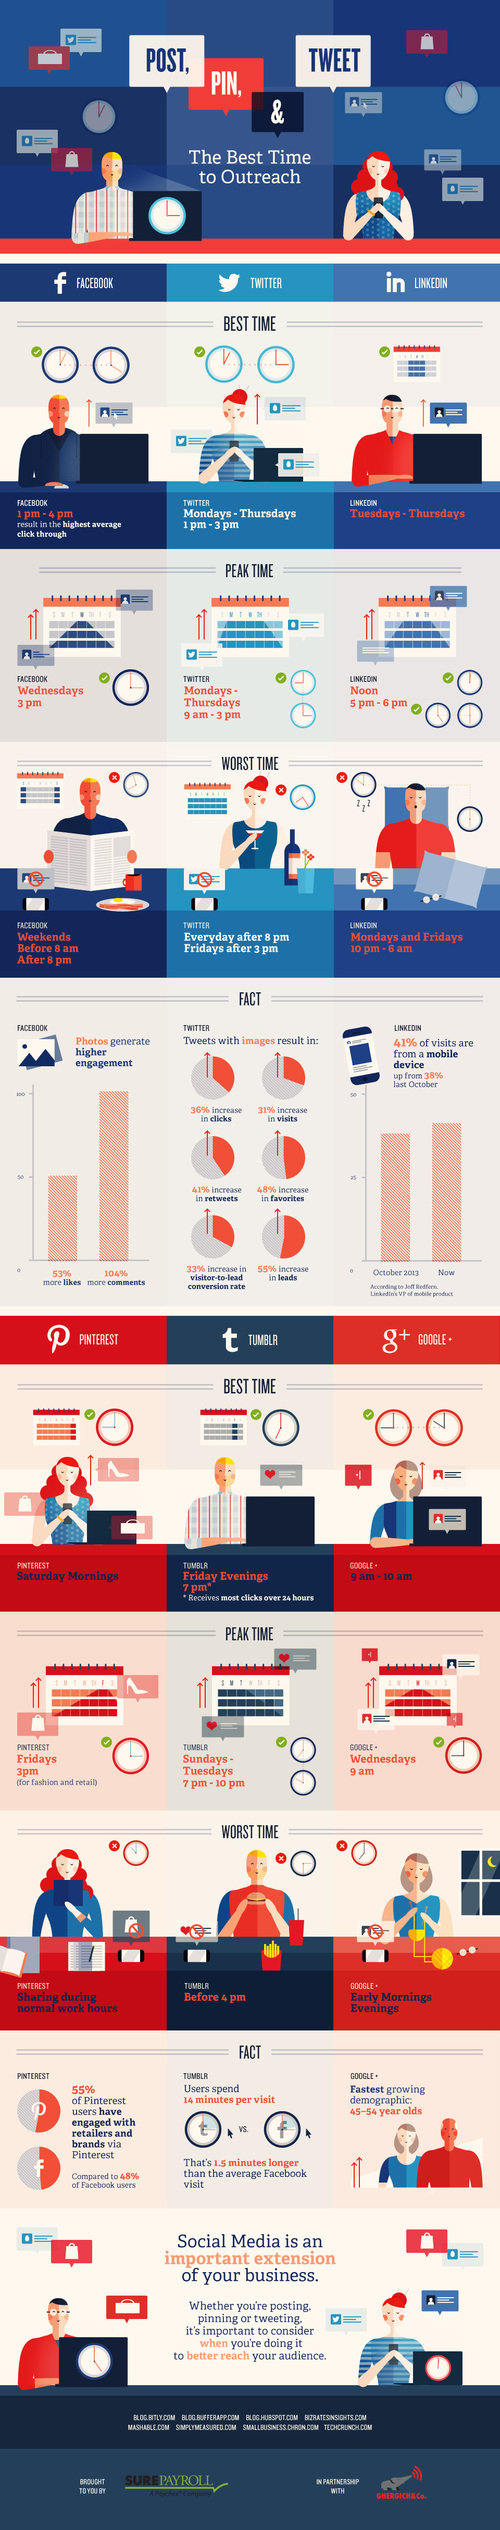 When And What Should You Post On Different Social Media Platforms? #Infographic